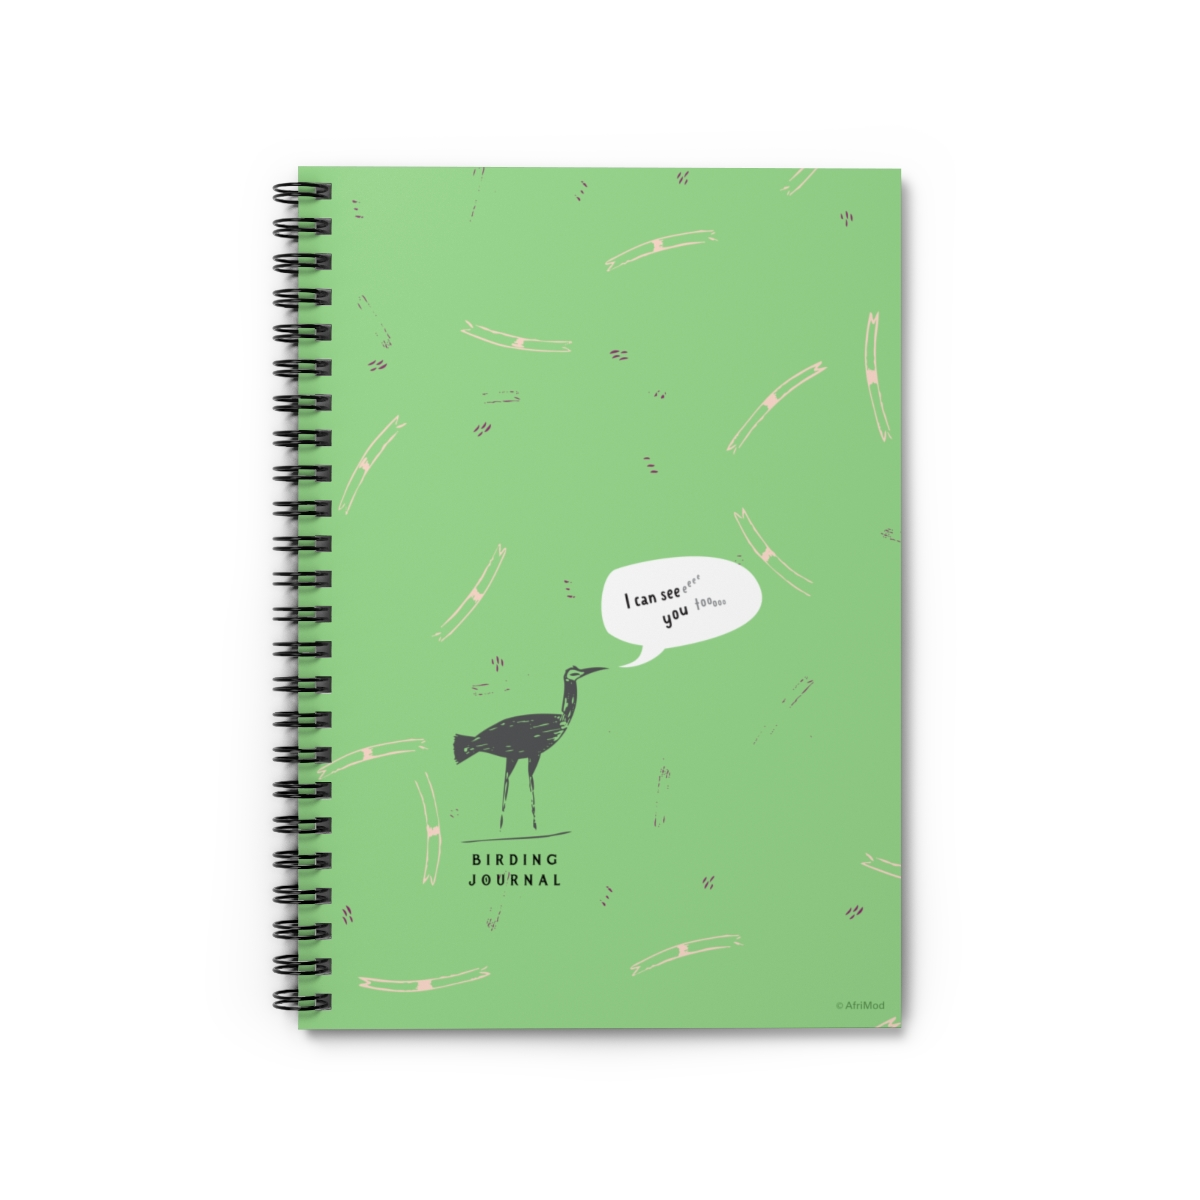 Quirky Birding Journal – I can see you too